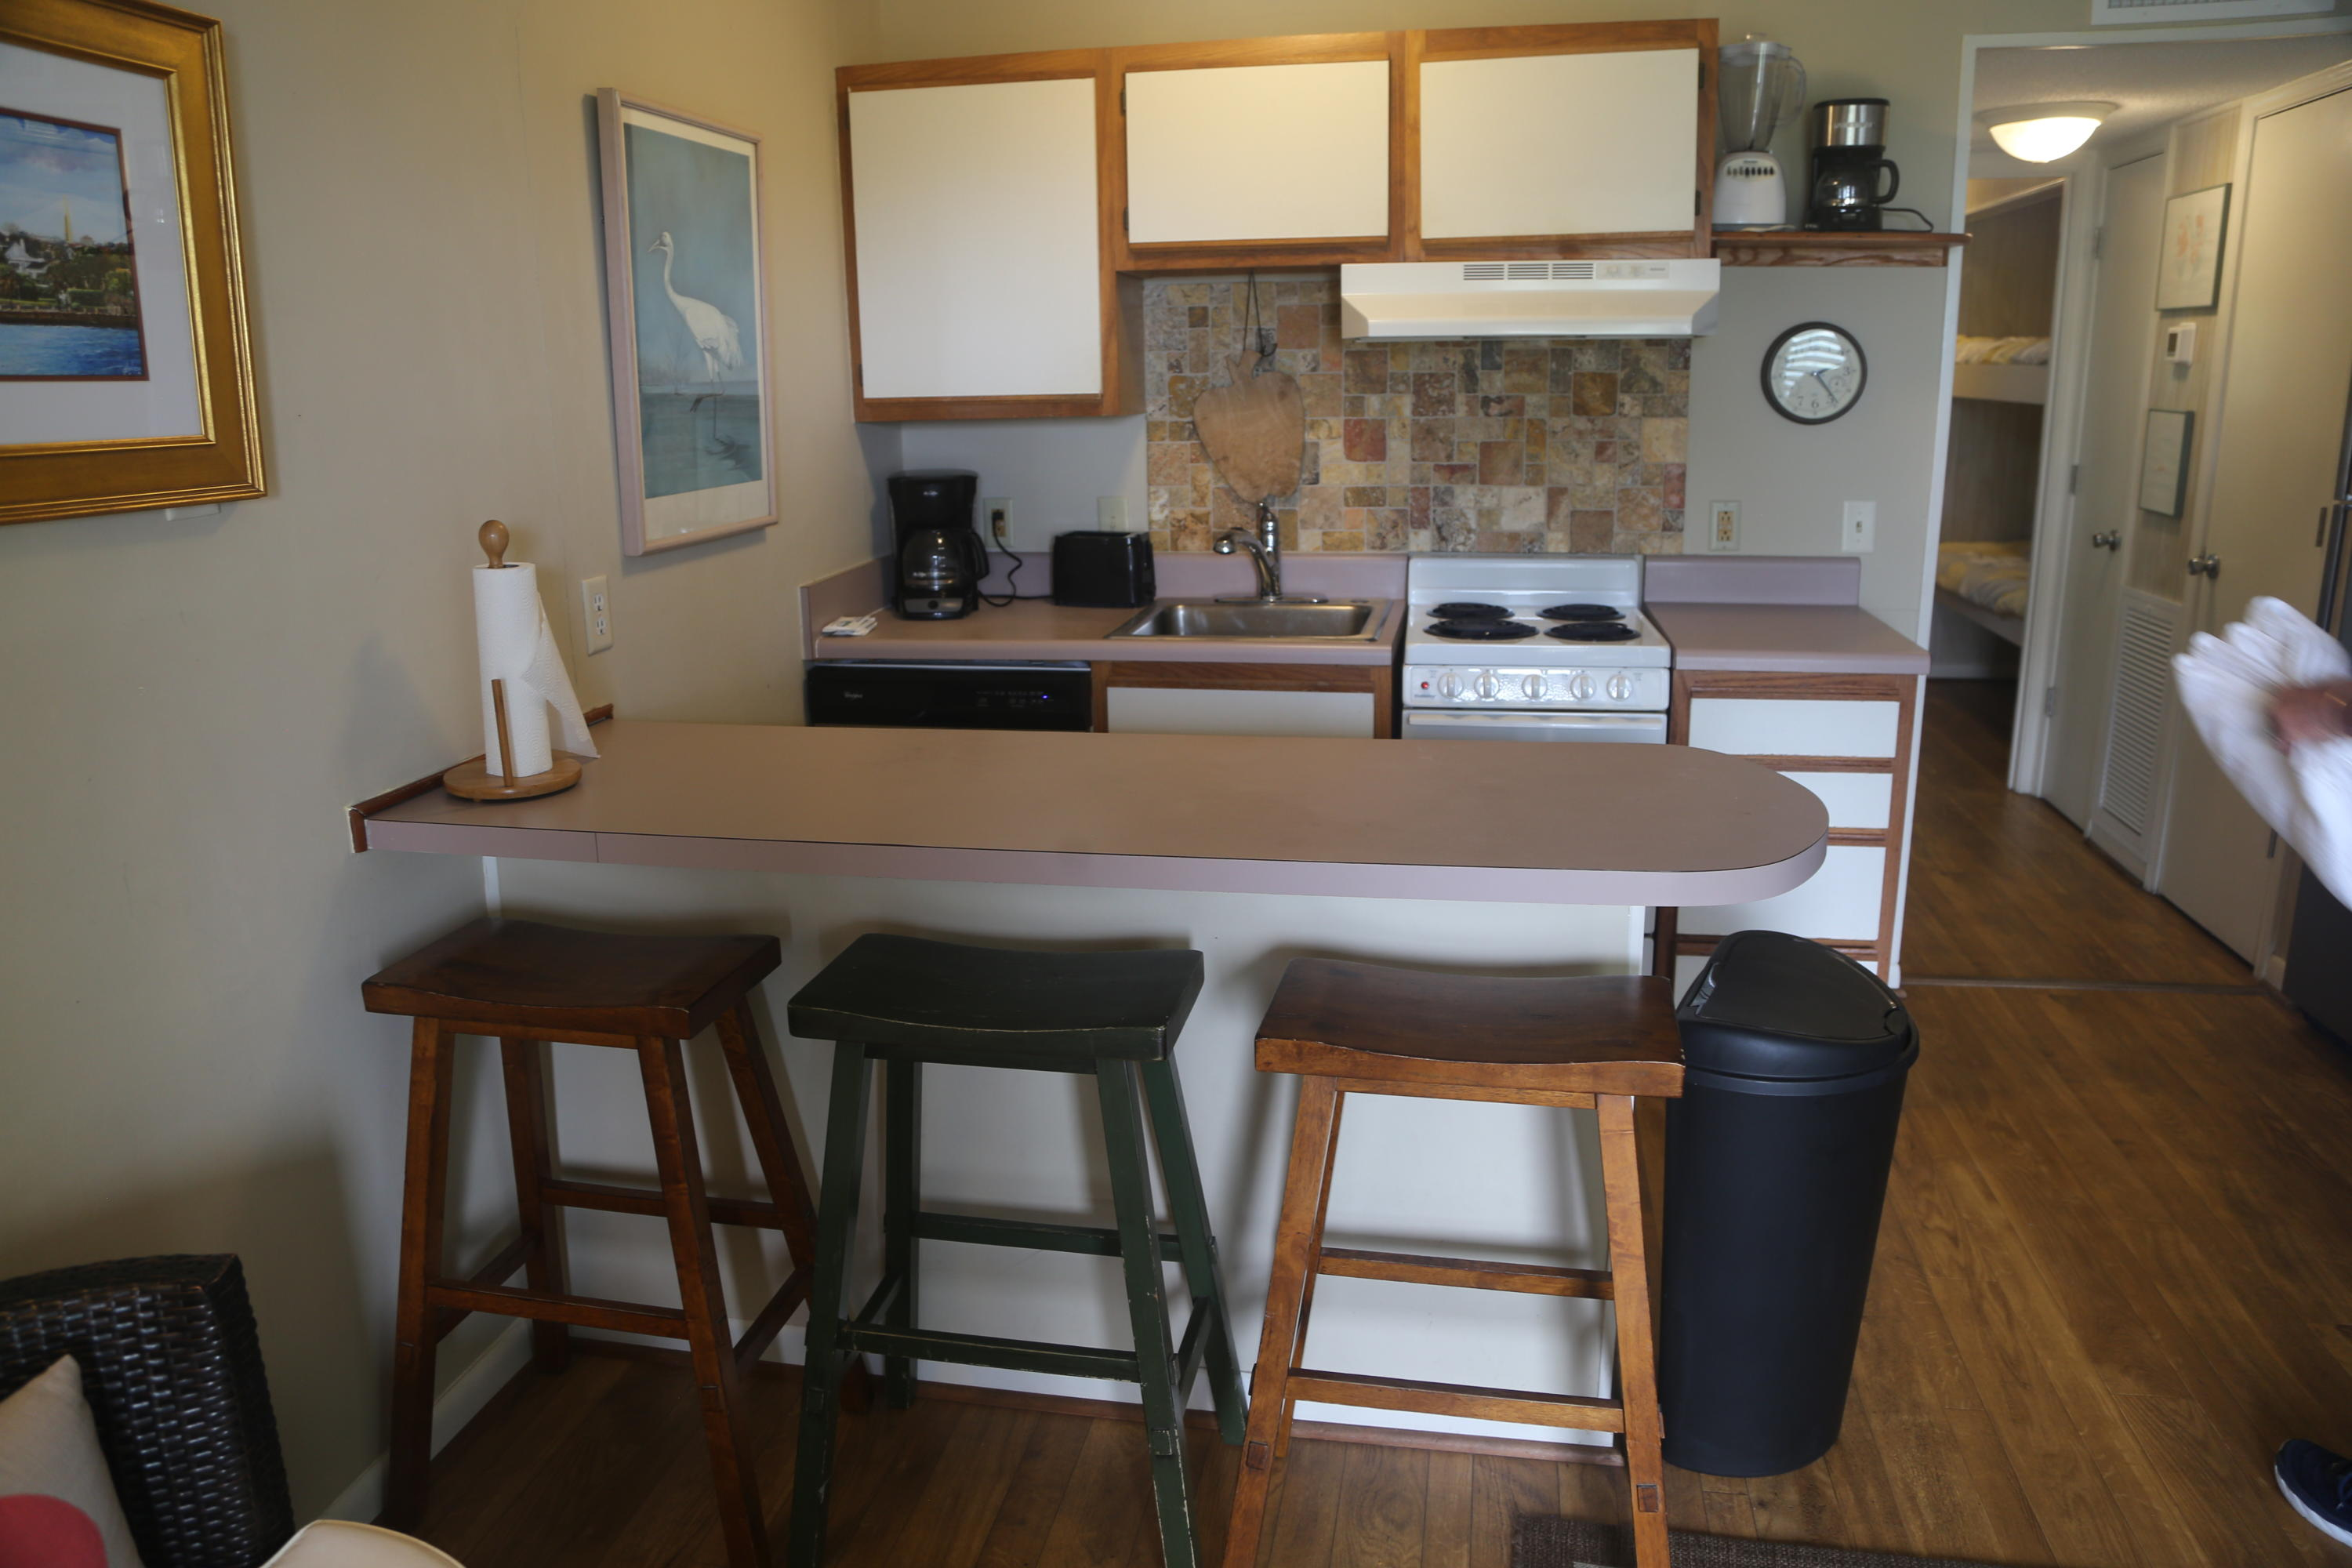 Sea Cabin On The Ocean Homes For Sale - 1300 Ocean, Isle of Palms, SC - 37